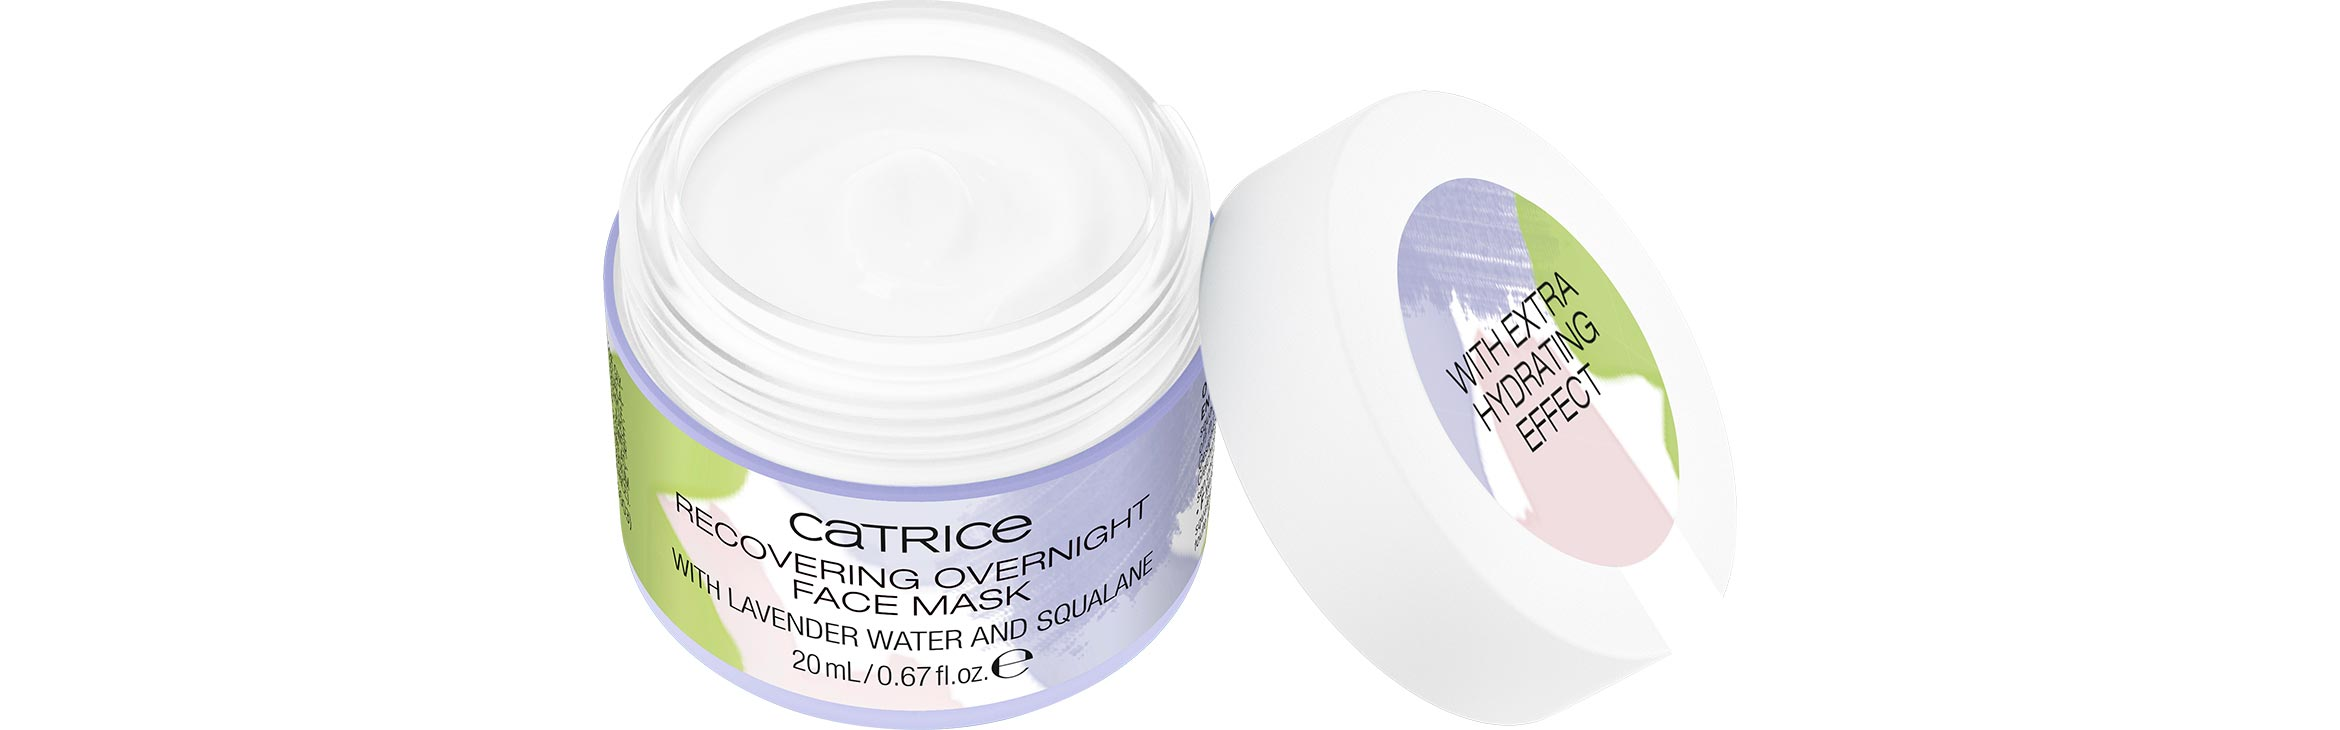 catrice recovering overnight face mask